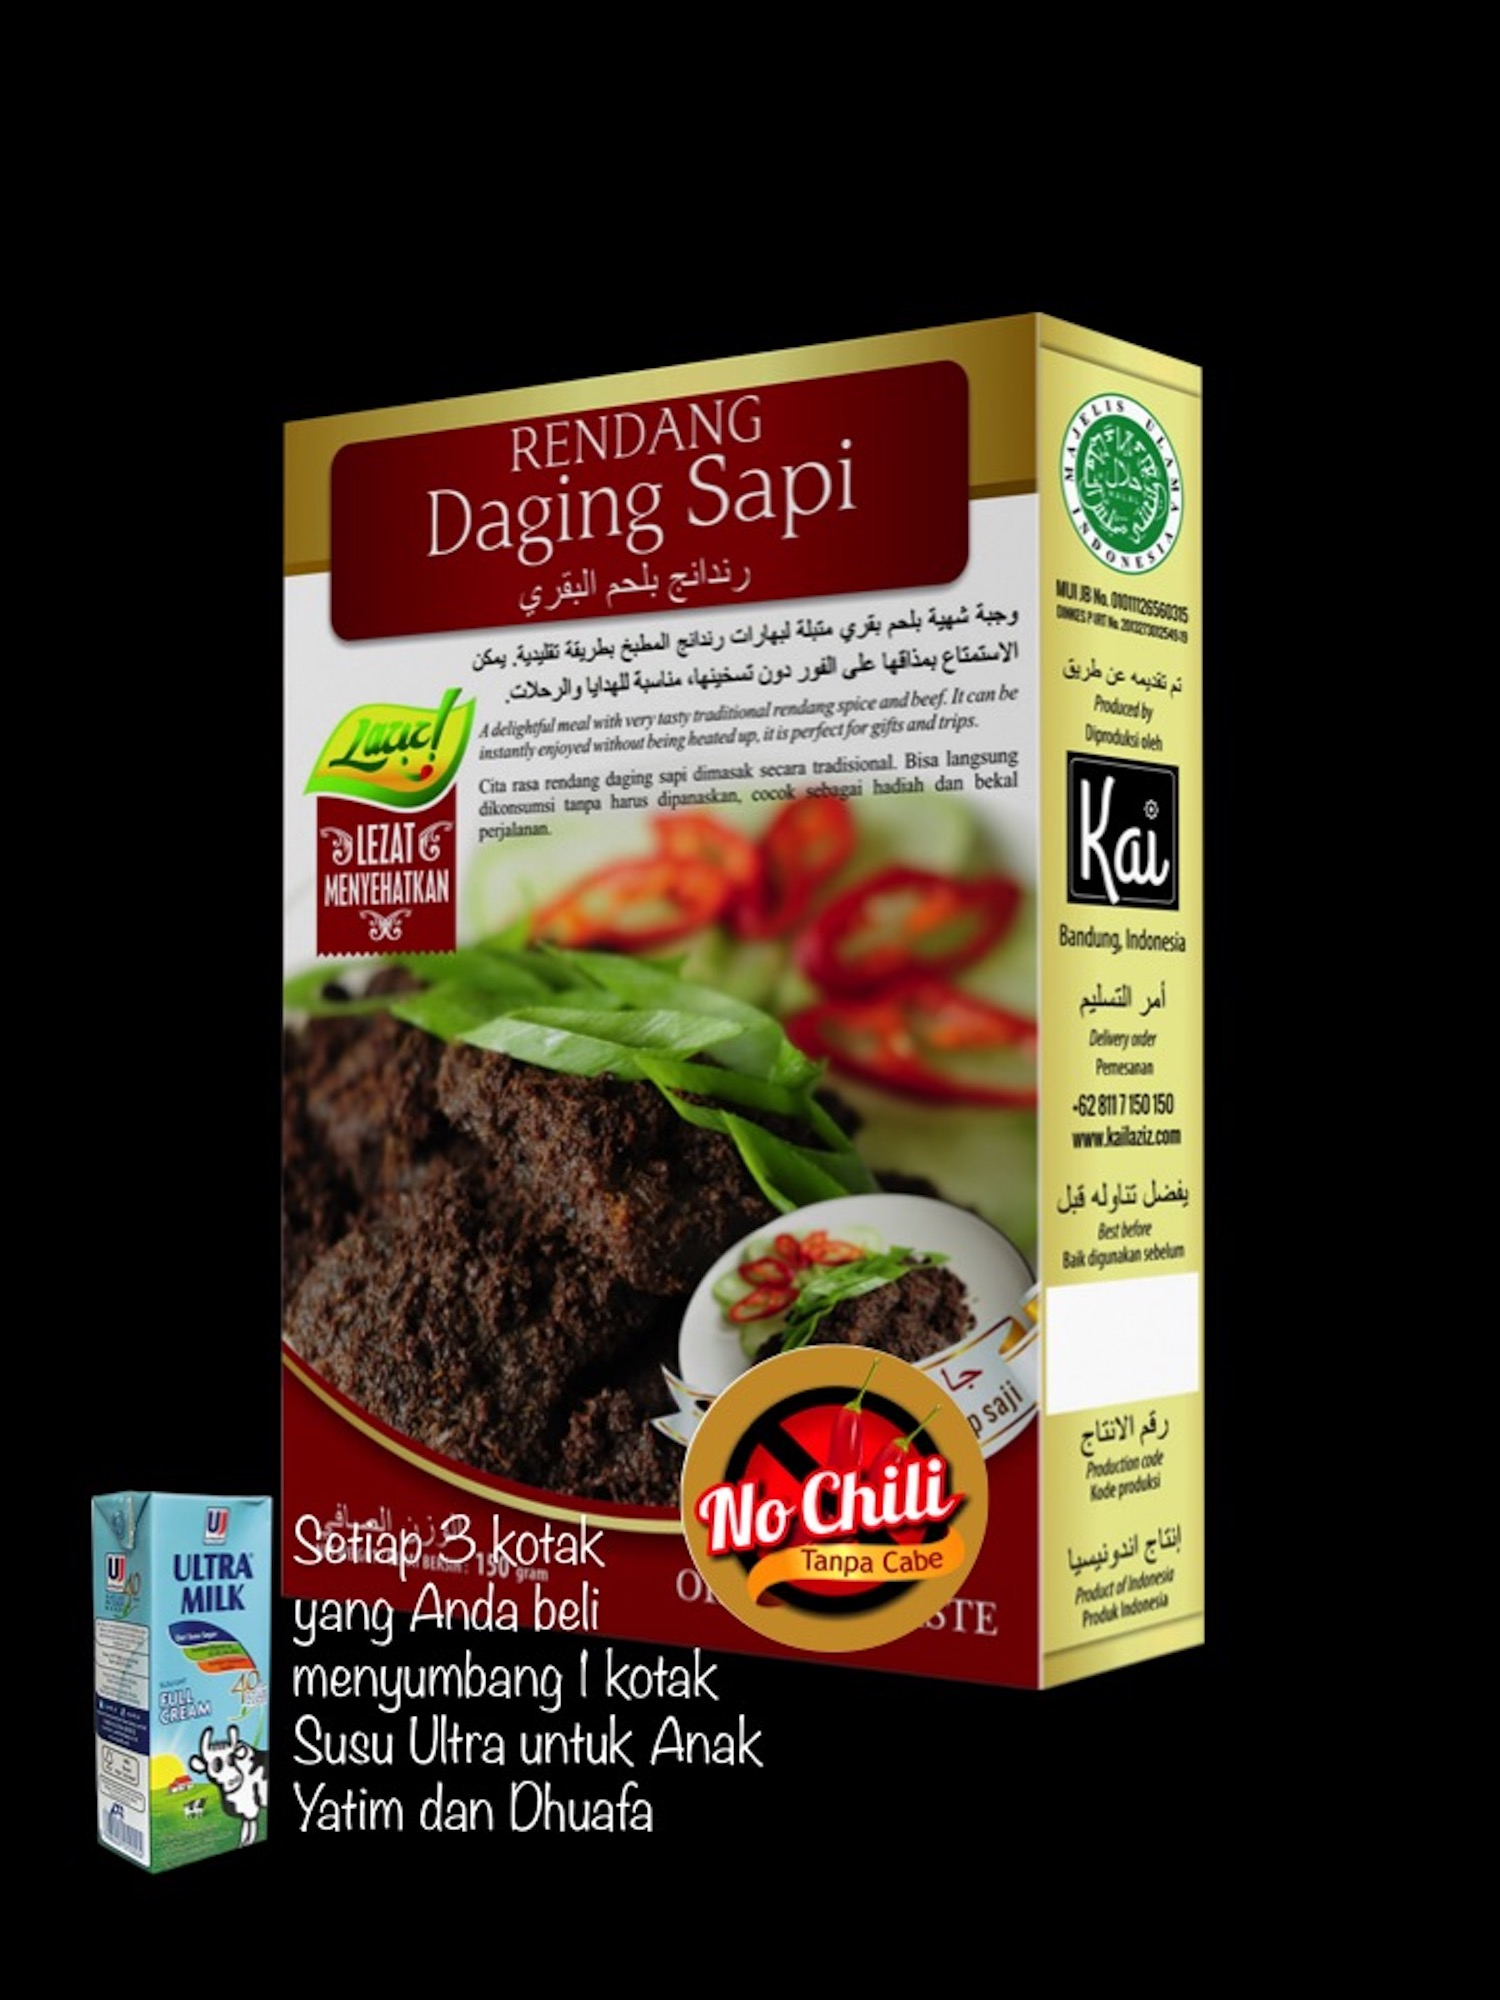 RENDANG DAGING SAPI NO CHILI KAI FOOD 150GR